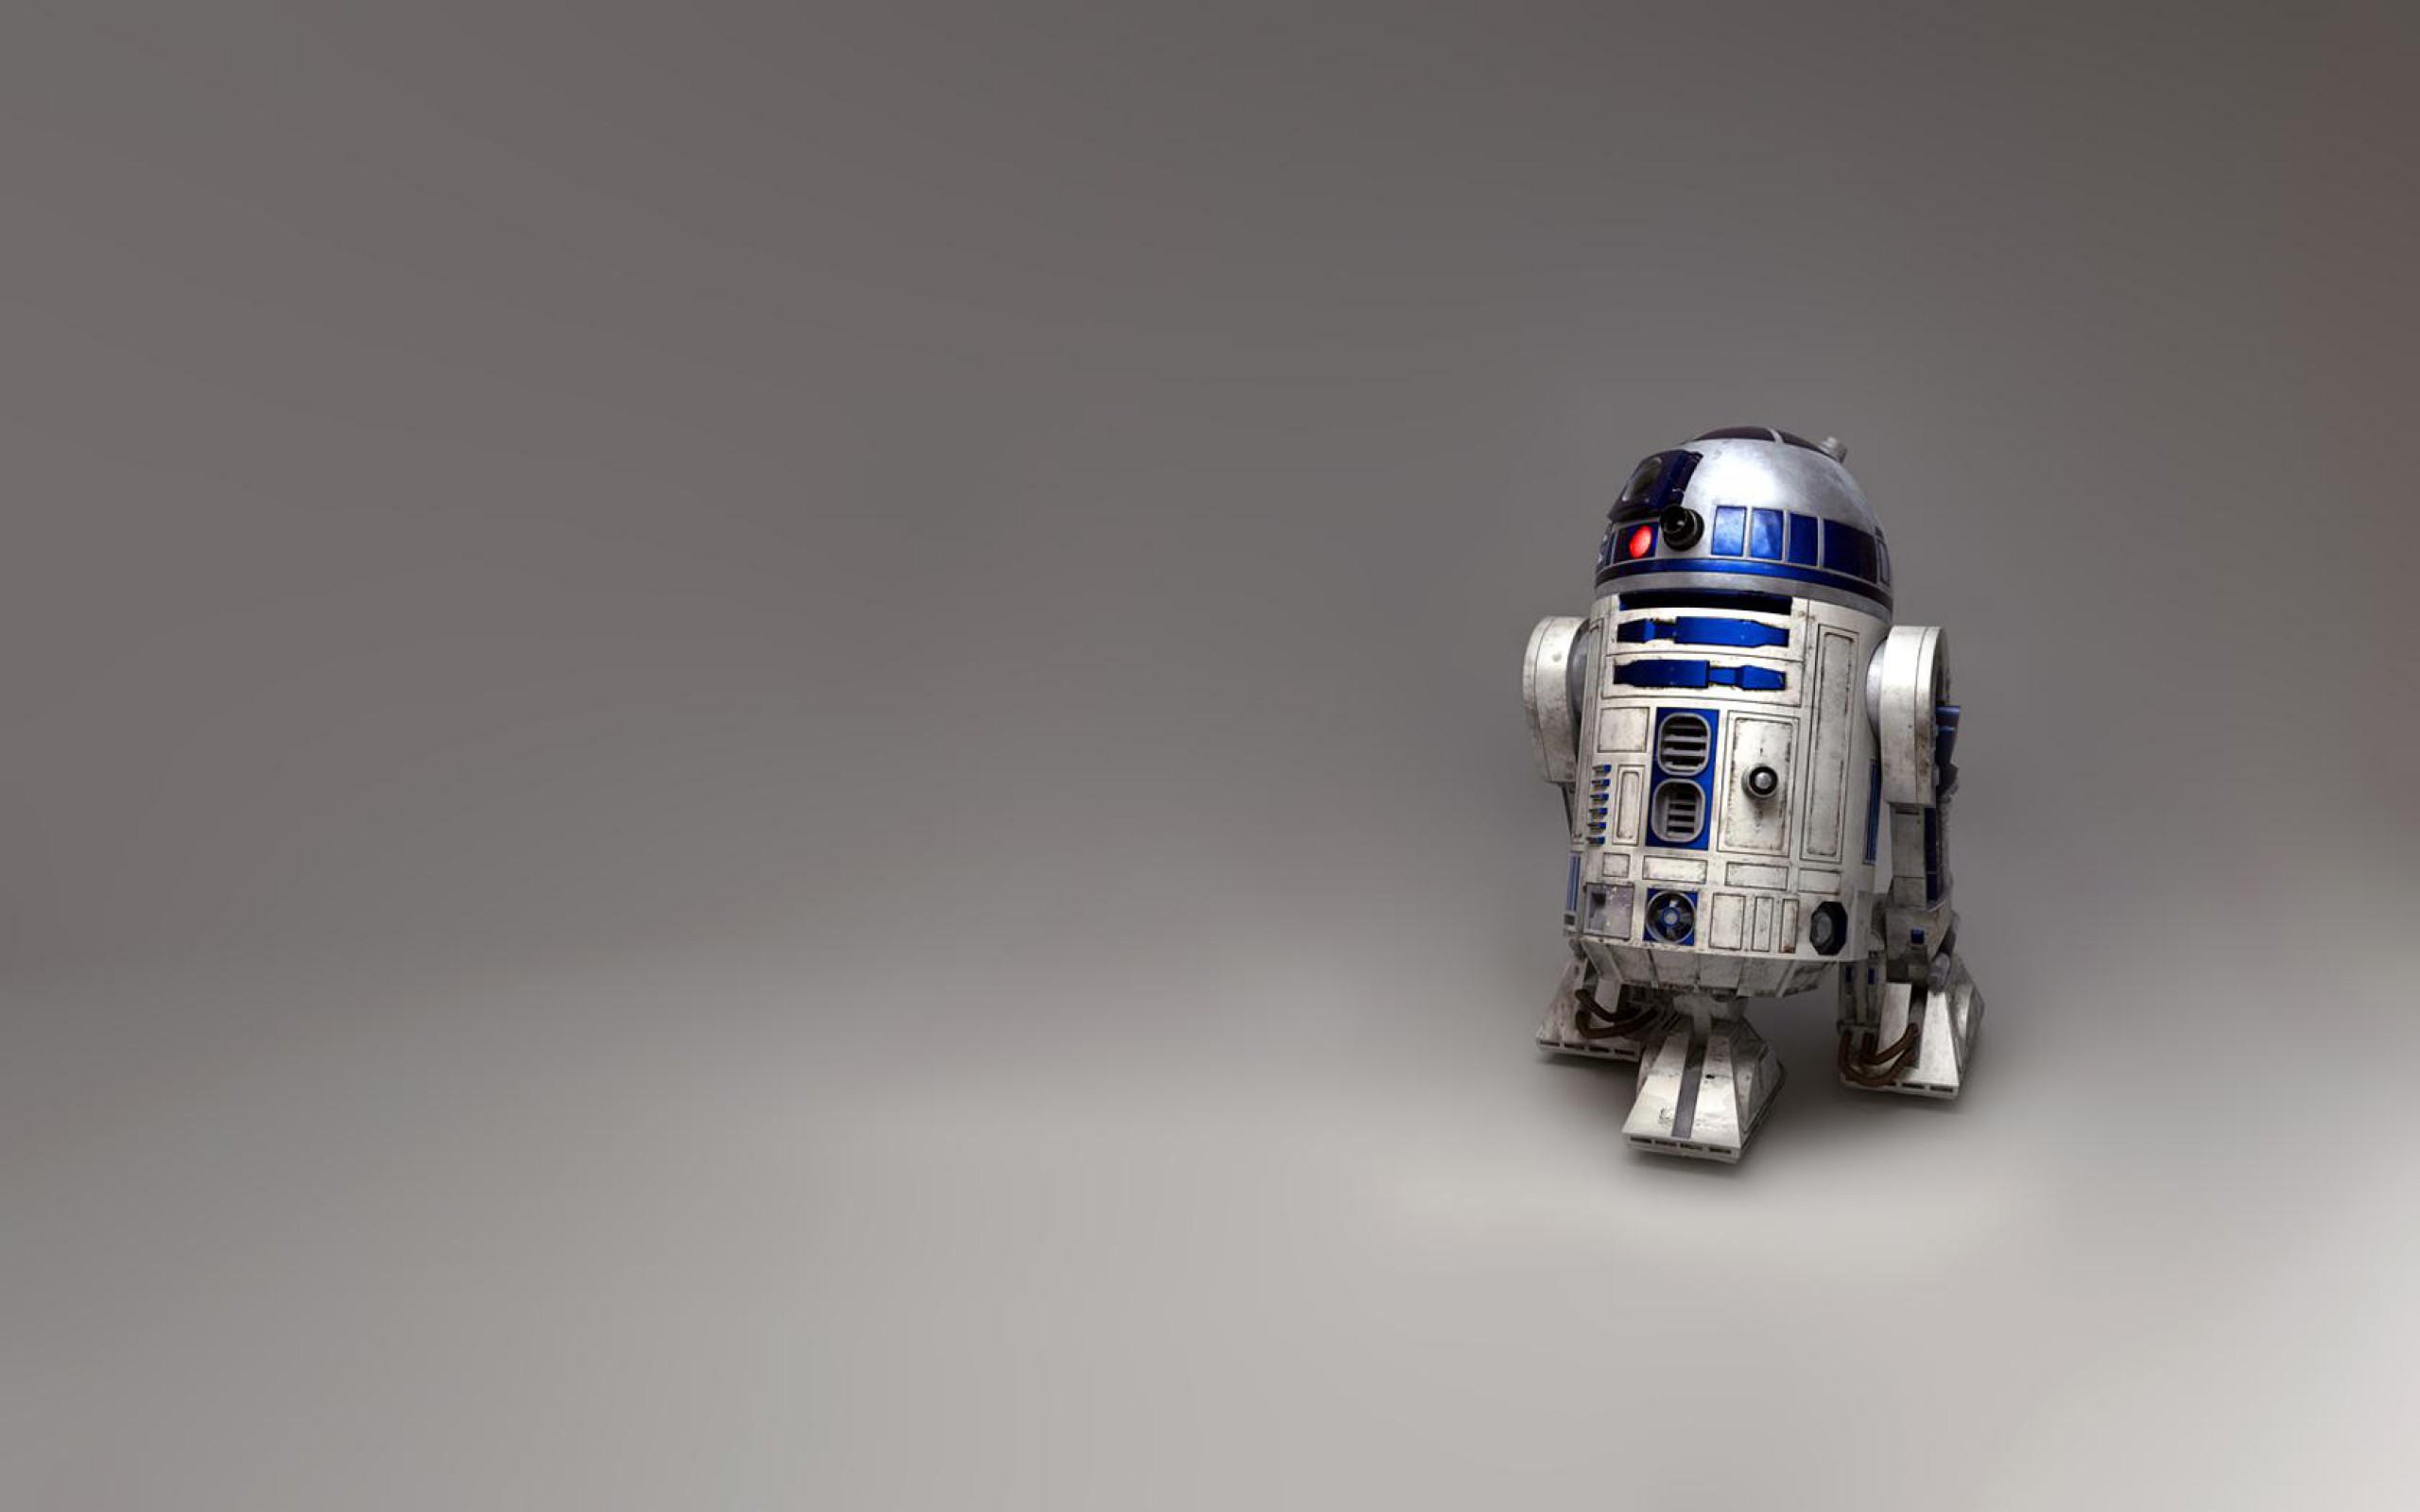 R2d2 Wallpaper ① Download Free Hd Backgrounds For Desktop And